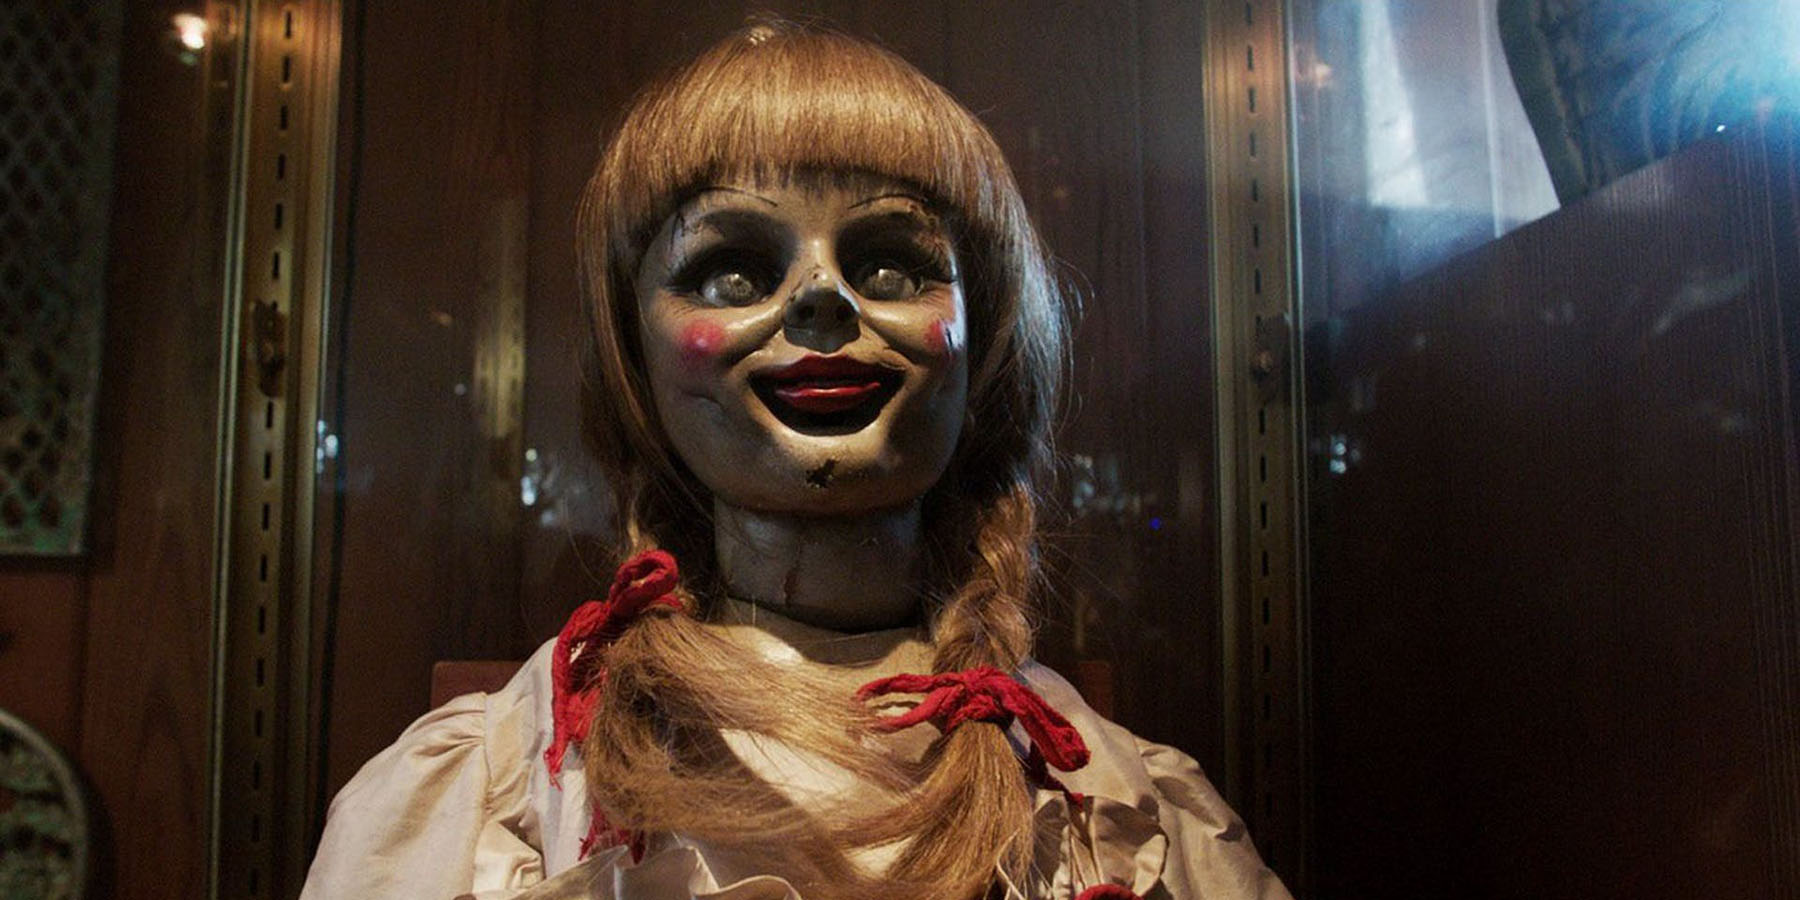 Annabelle 3: All the Conjuring Universe Easter Eggs in the First Image